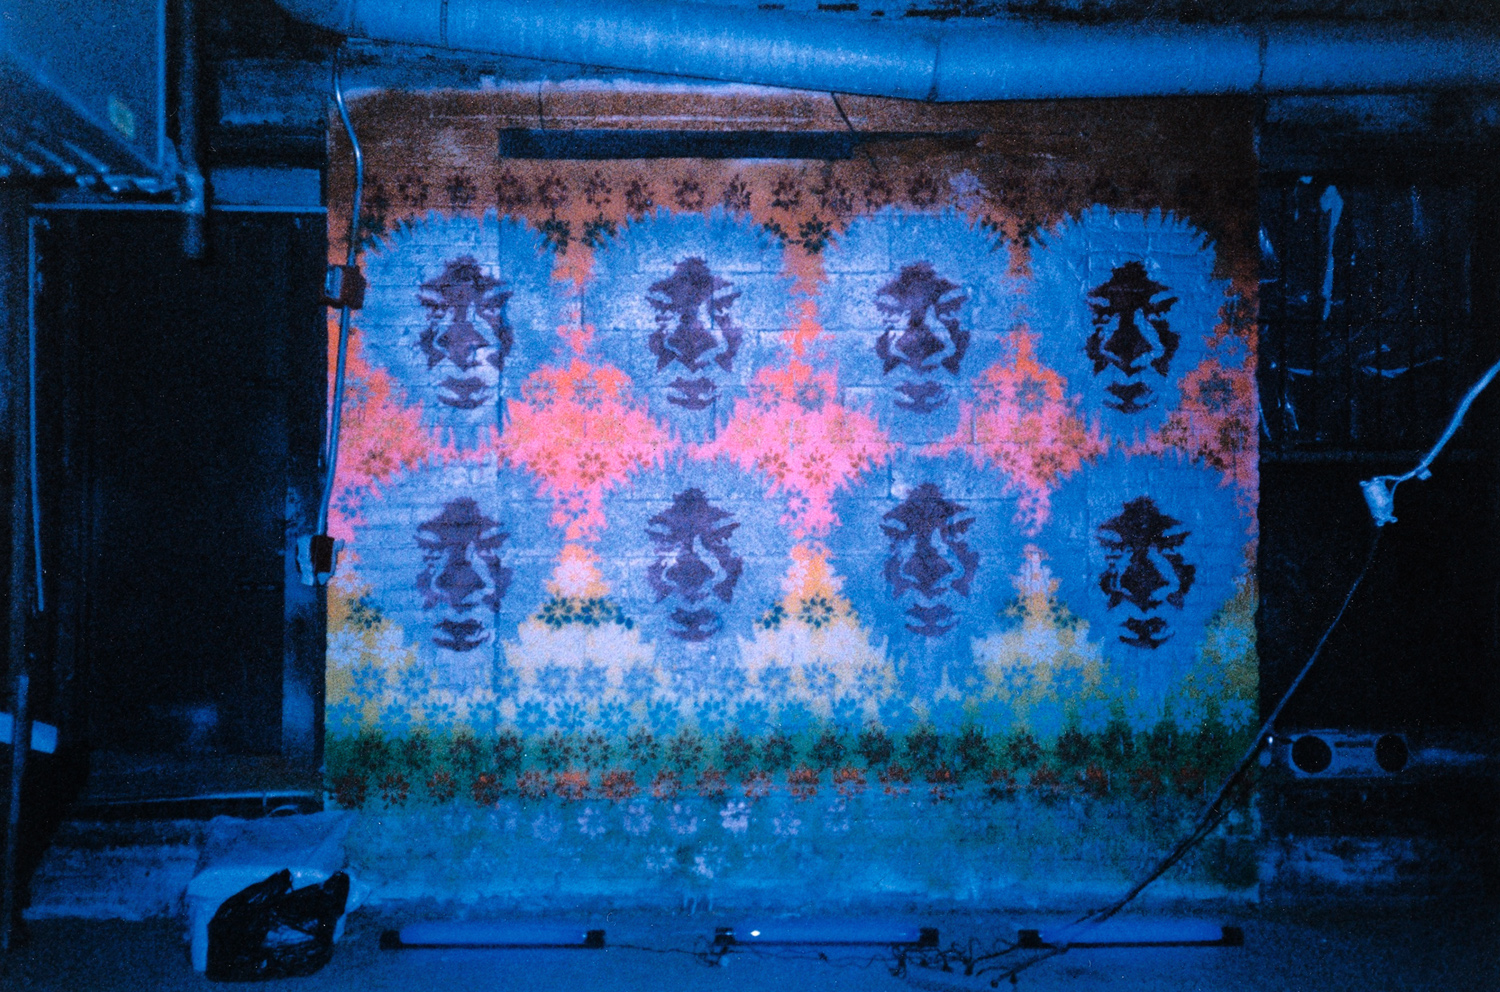 installation view,  Trust No 1  mural commission owery, NY, 1998